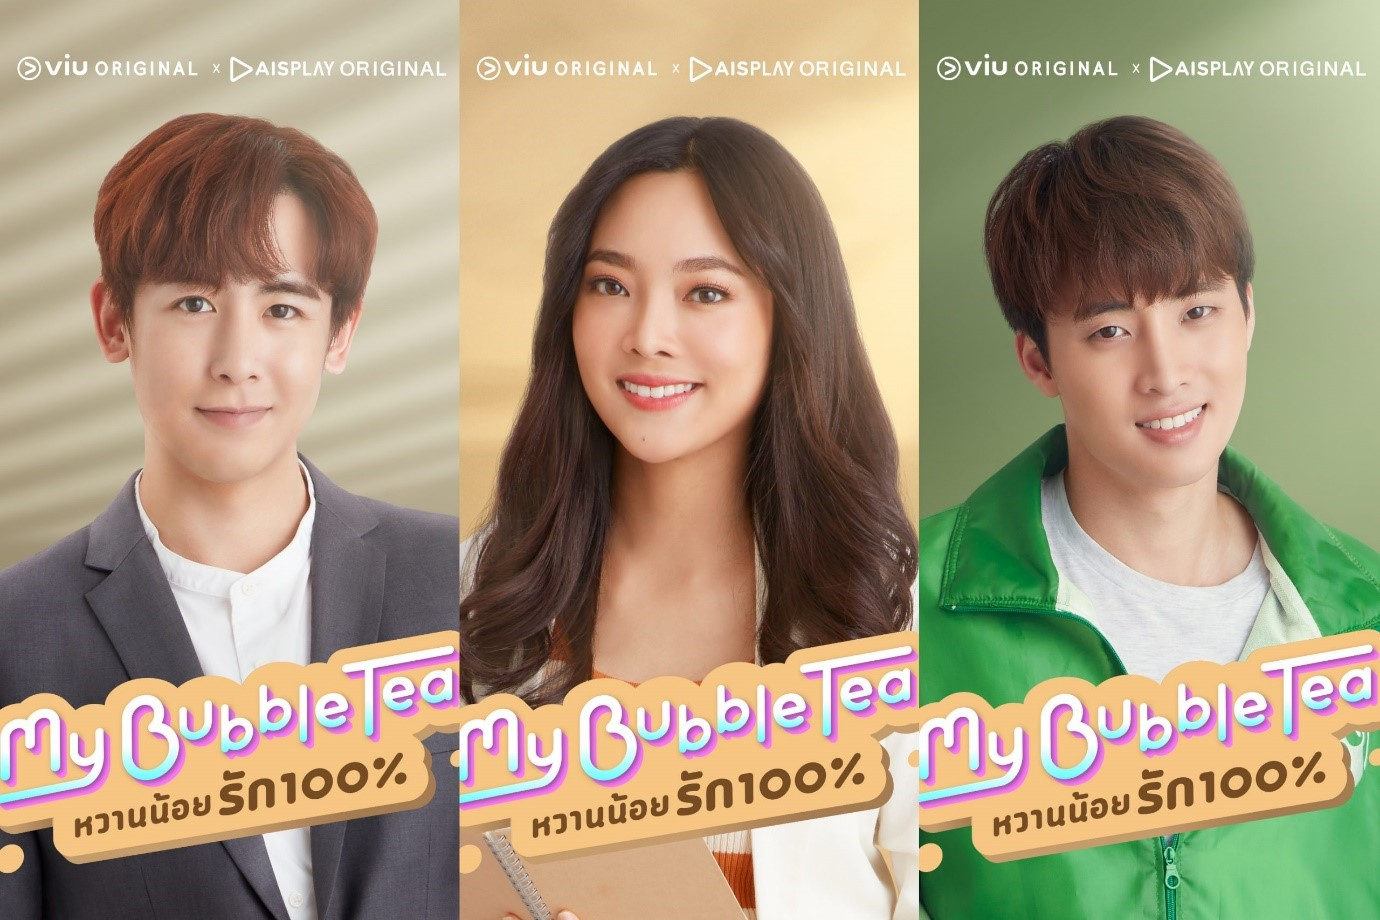 'My Bubble Tea' Drama Komedi Romantis Terbaru 2020